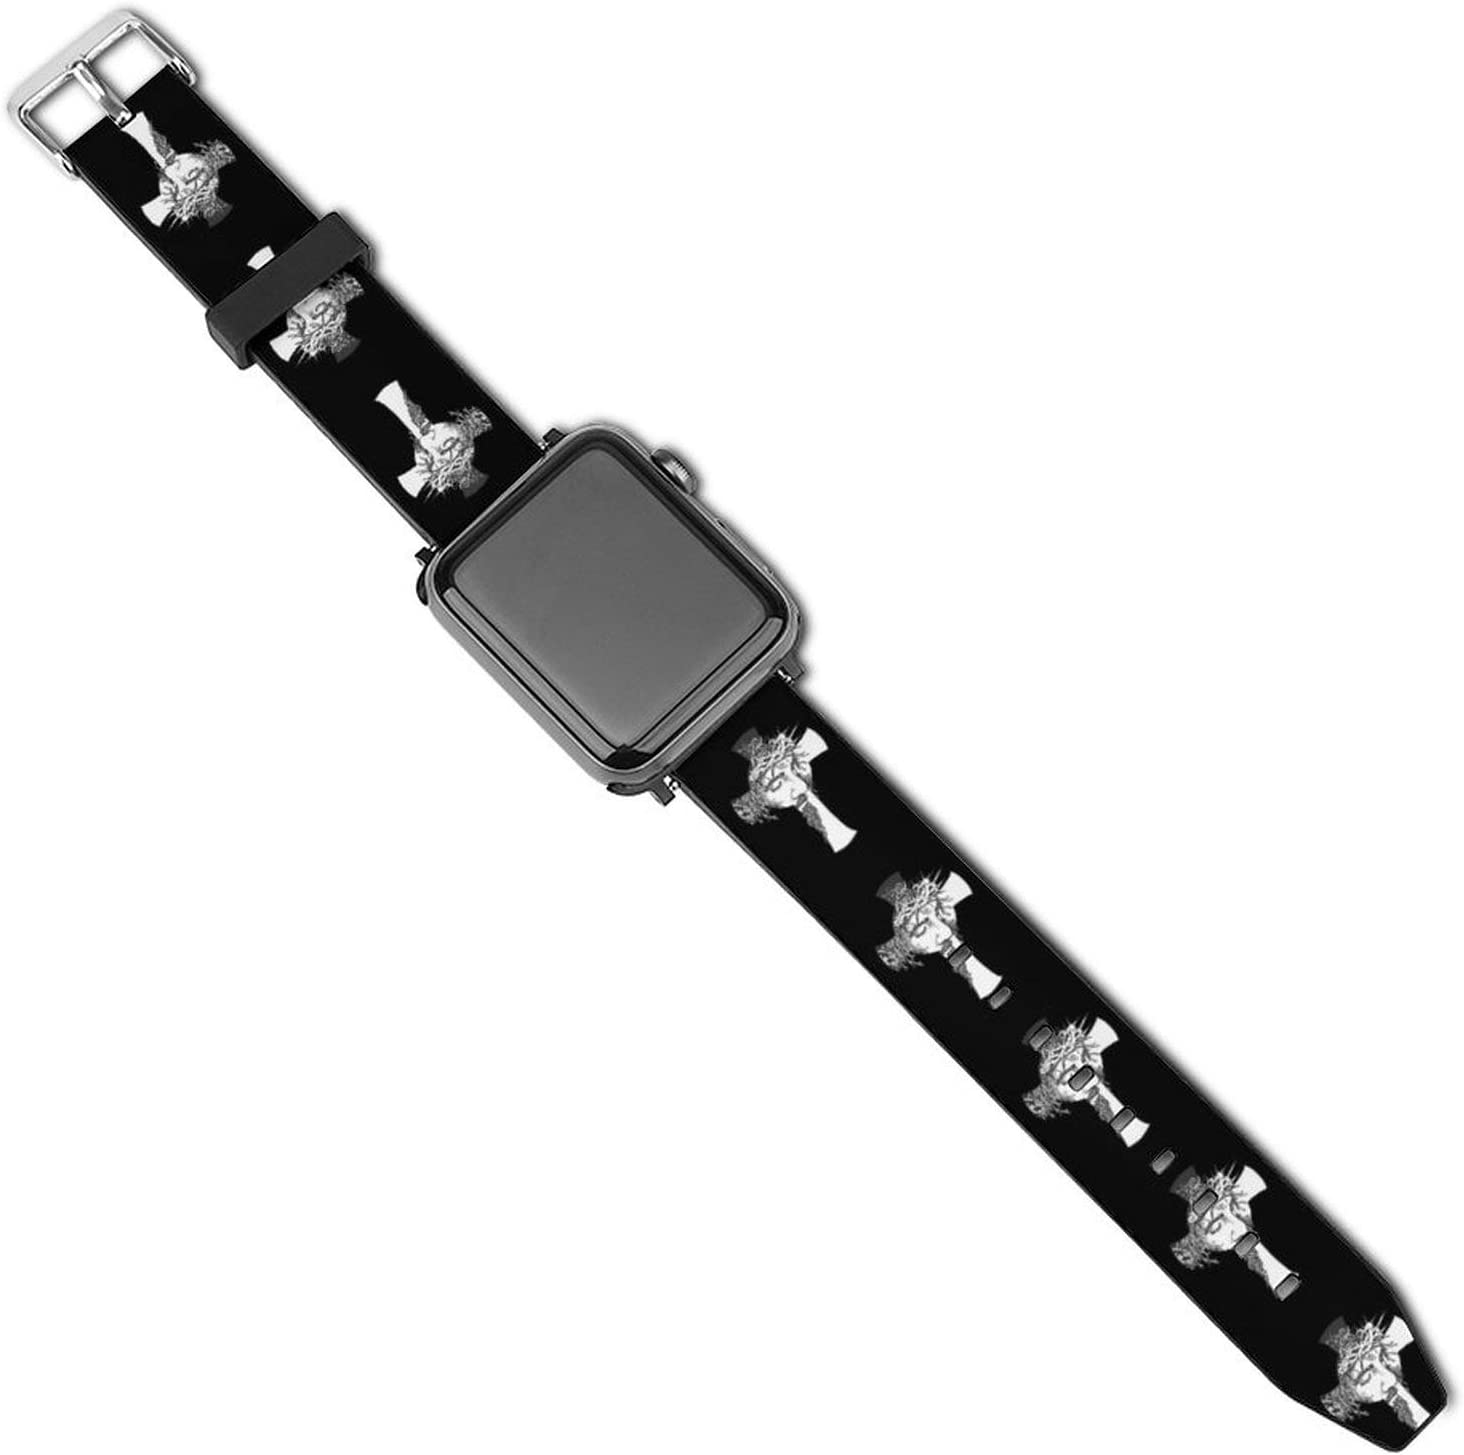 Cross Jesus Sport PU Leather Soft Strap Band for iWatch Series 5 4 3 2 1 Compatible with Apple Watch Bands 38mm 40mm 42mm 44mm